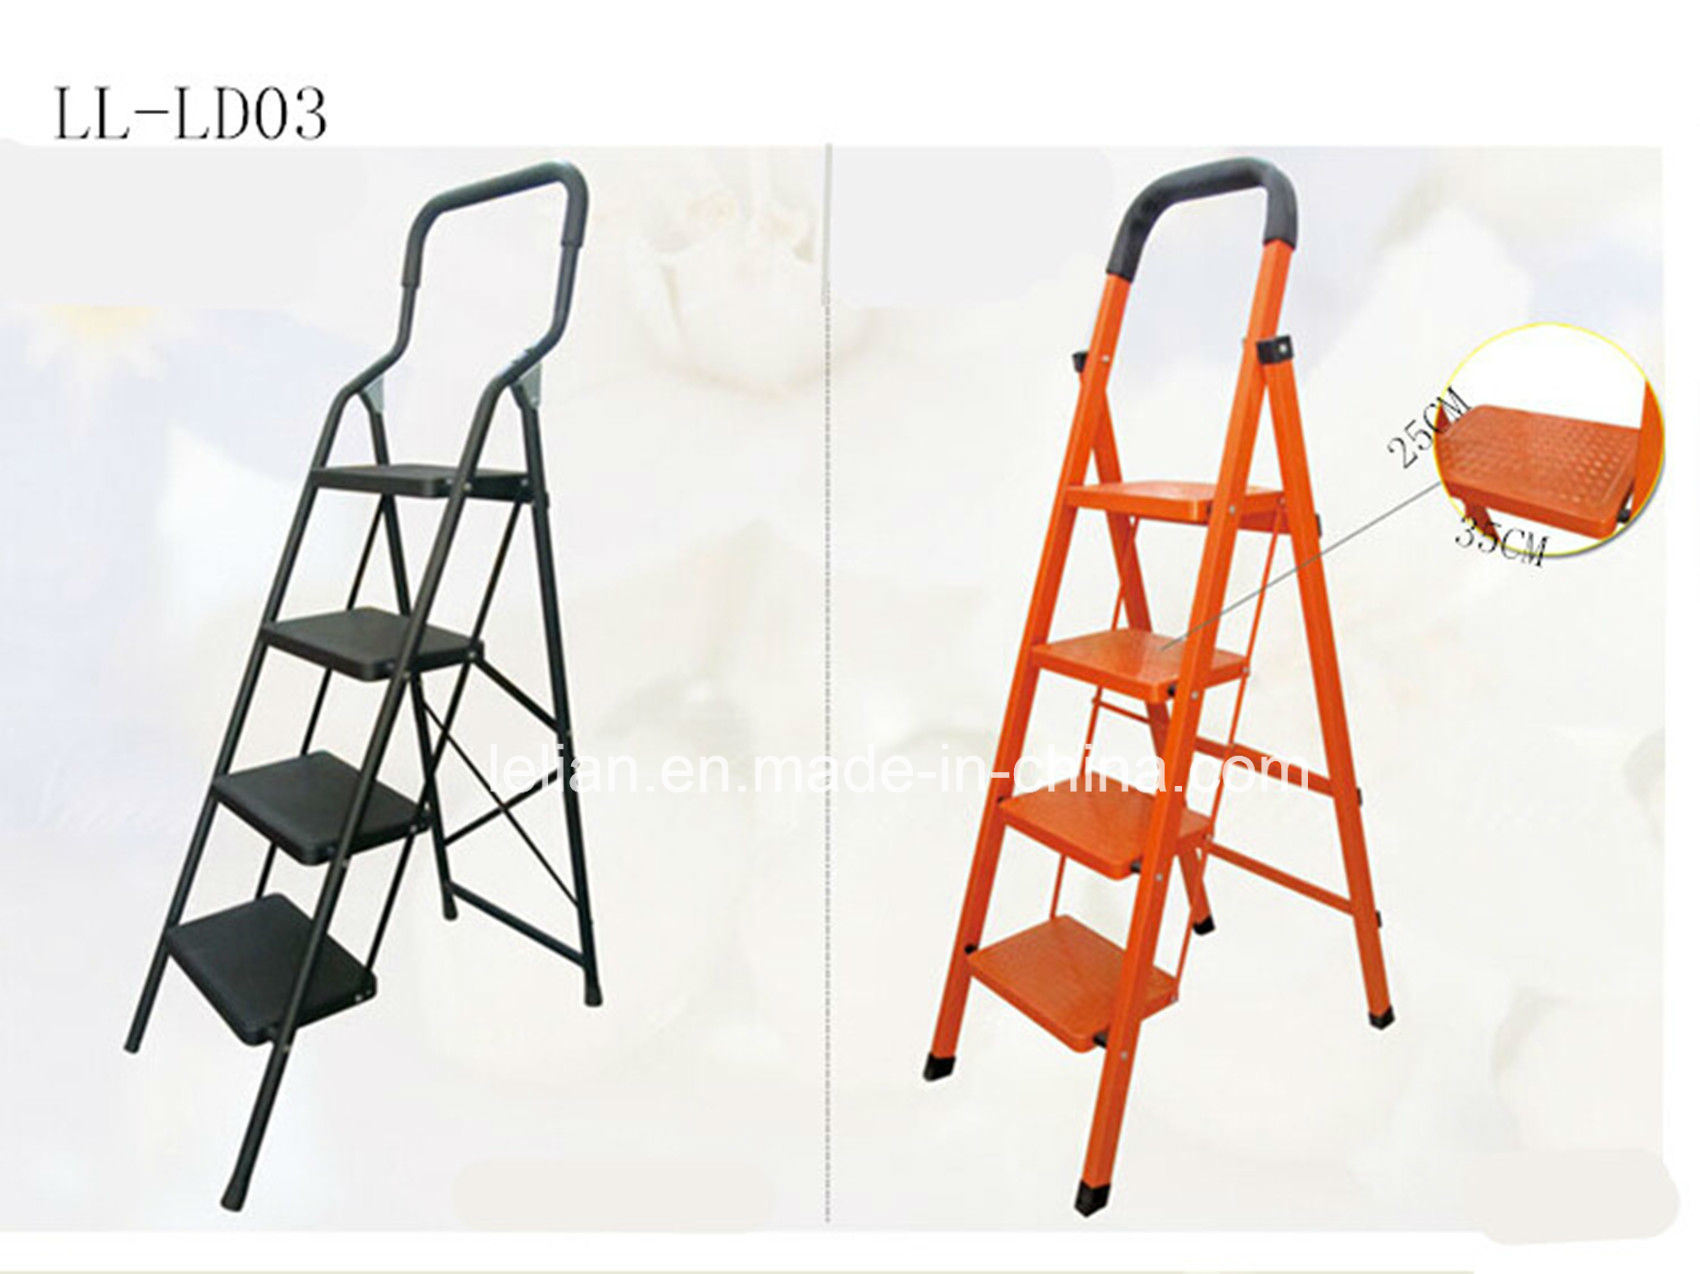 Hot Sale Strong 3 Meter Super Aluminum Ladder with En131 Approved Ladder